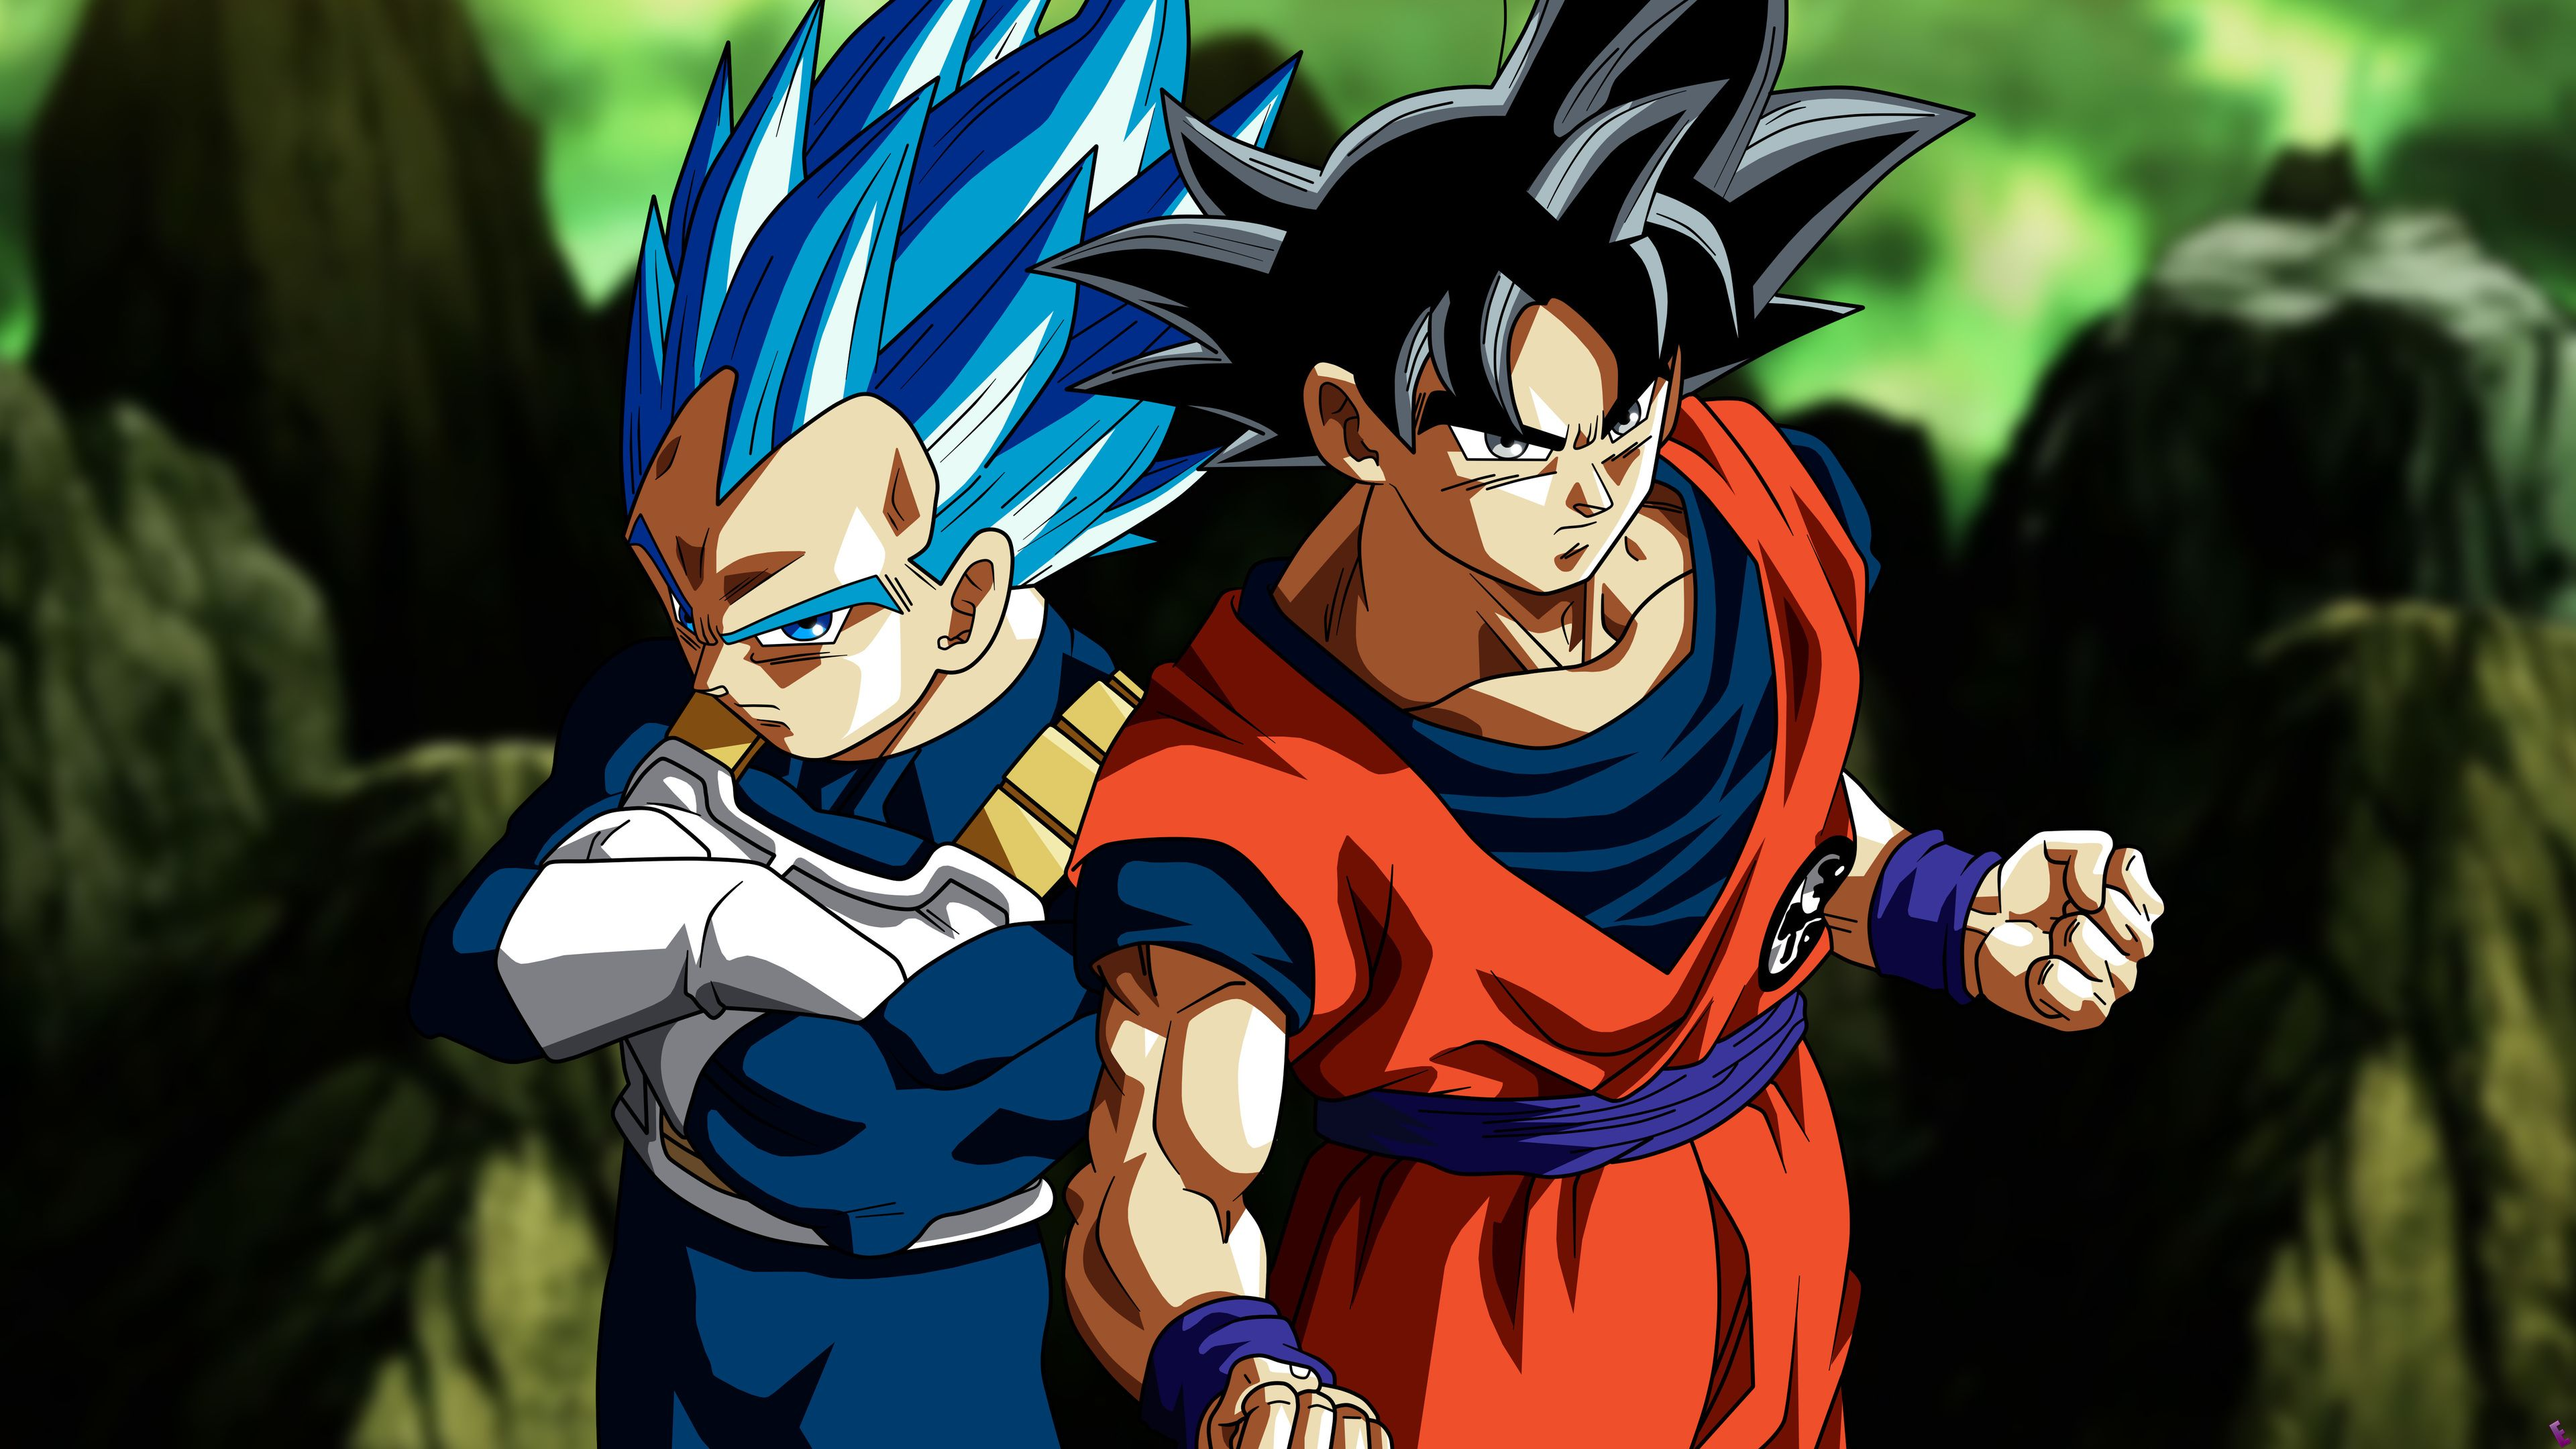 Dragon Ball Super Wallpaper 4k Phone Goku Goku E Vegeta Dragon